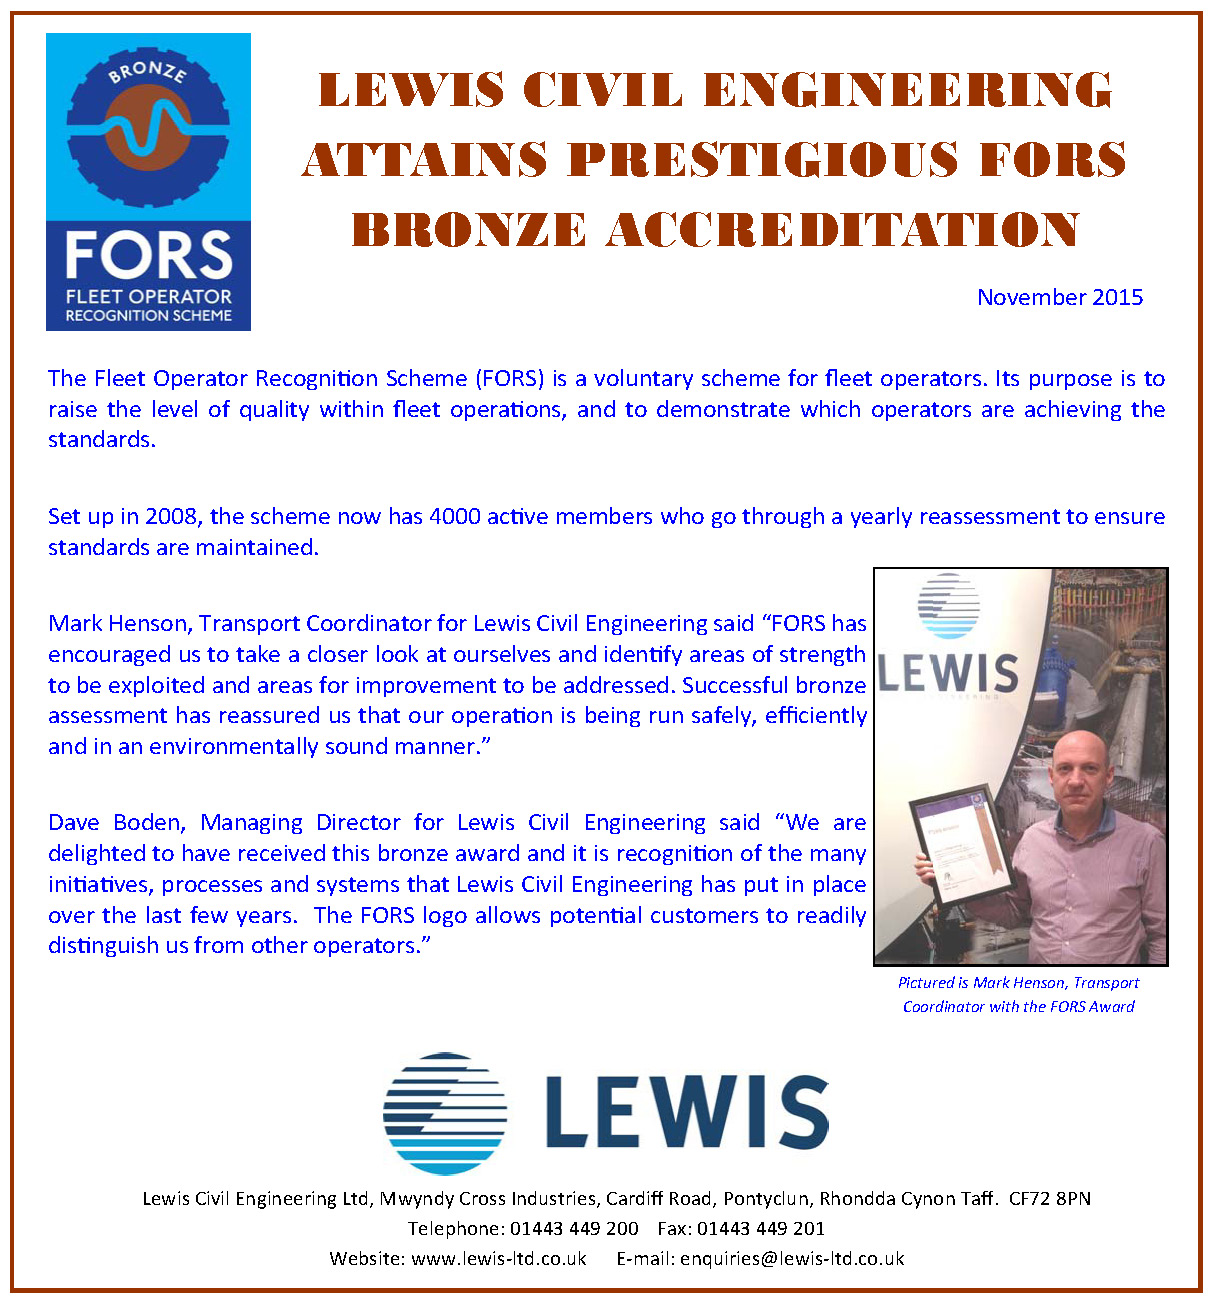 LEWIS ATTAINS PRESTIGIOUS FORS BRONZE ACCREDITATION